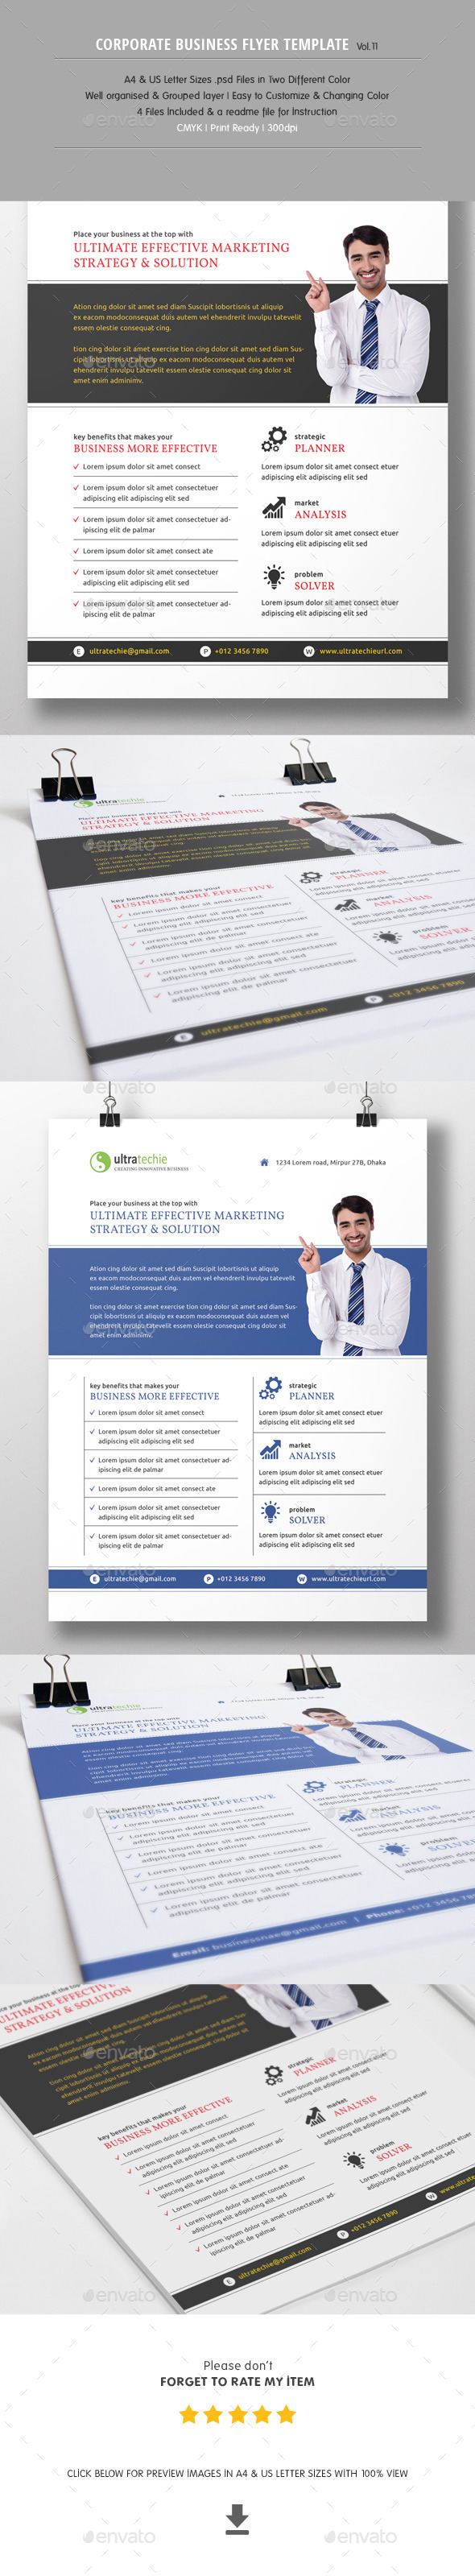 GraphicRiver Corporate Business Flyer Vol.11 10960805